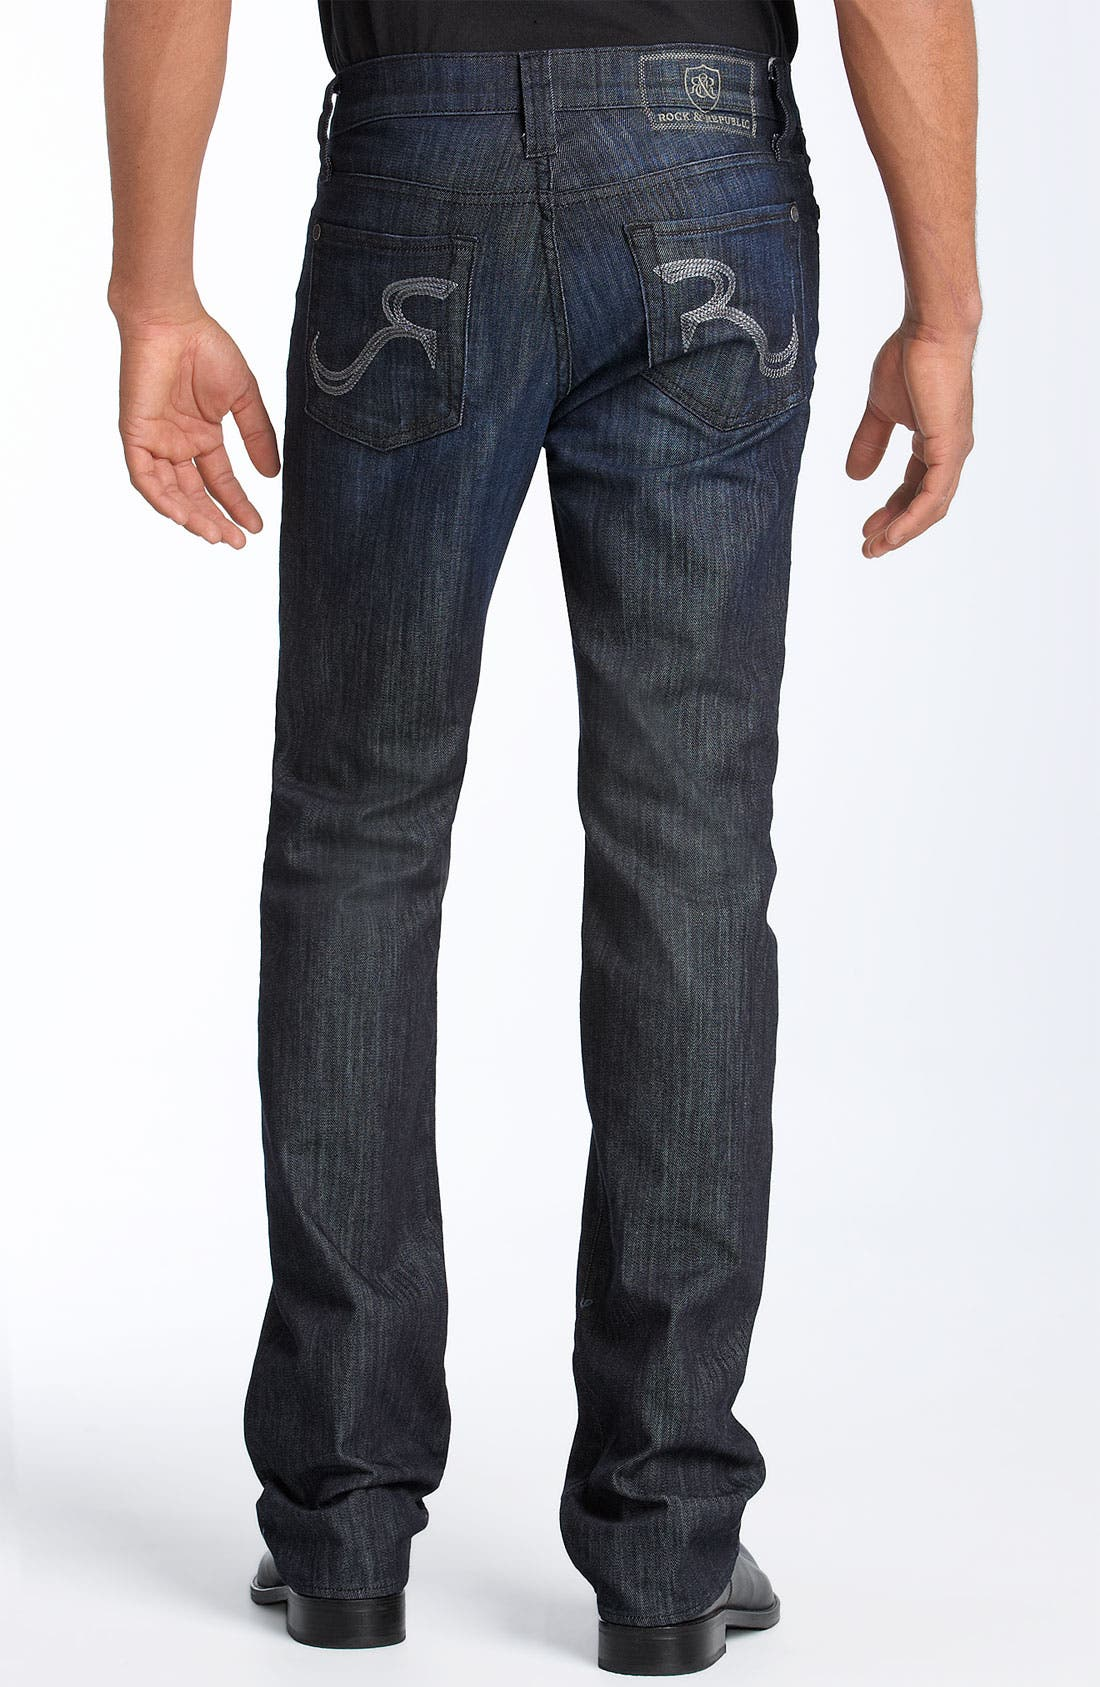 ROCK & REPUBLIC,                             'Neil' Relaxed Straight Leg Jeans,                             Main thumbnail 1, color,                             490